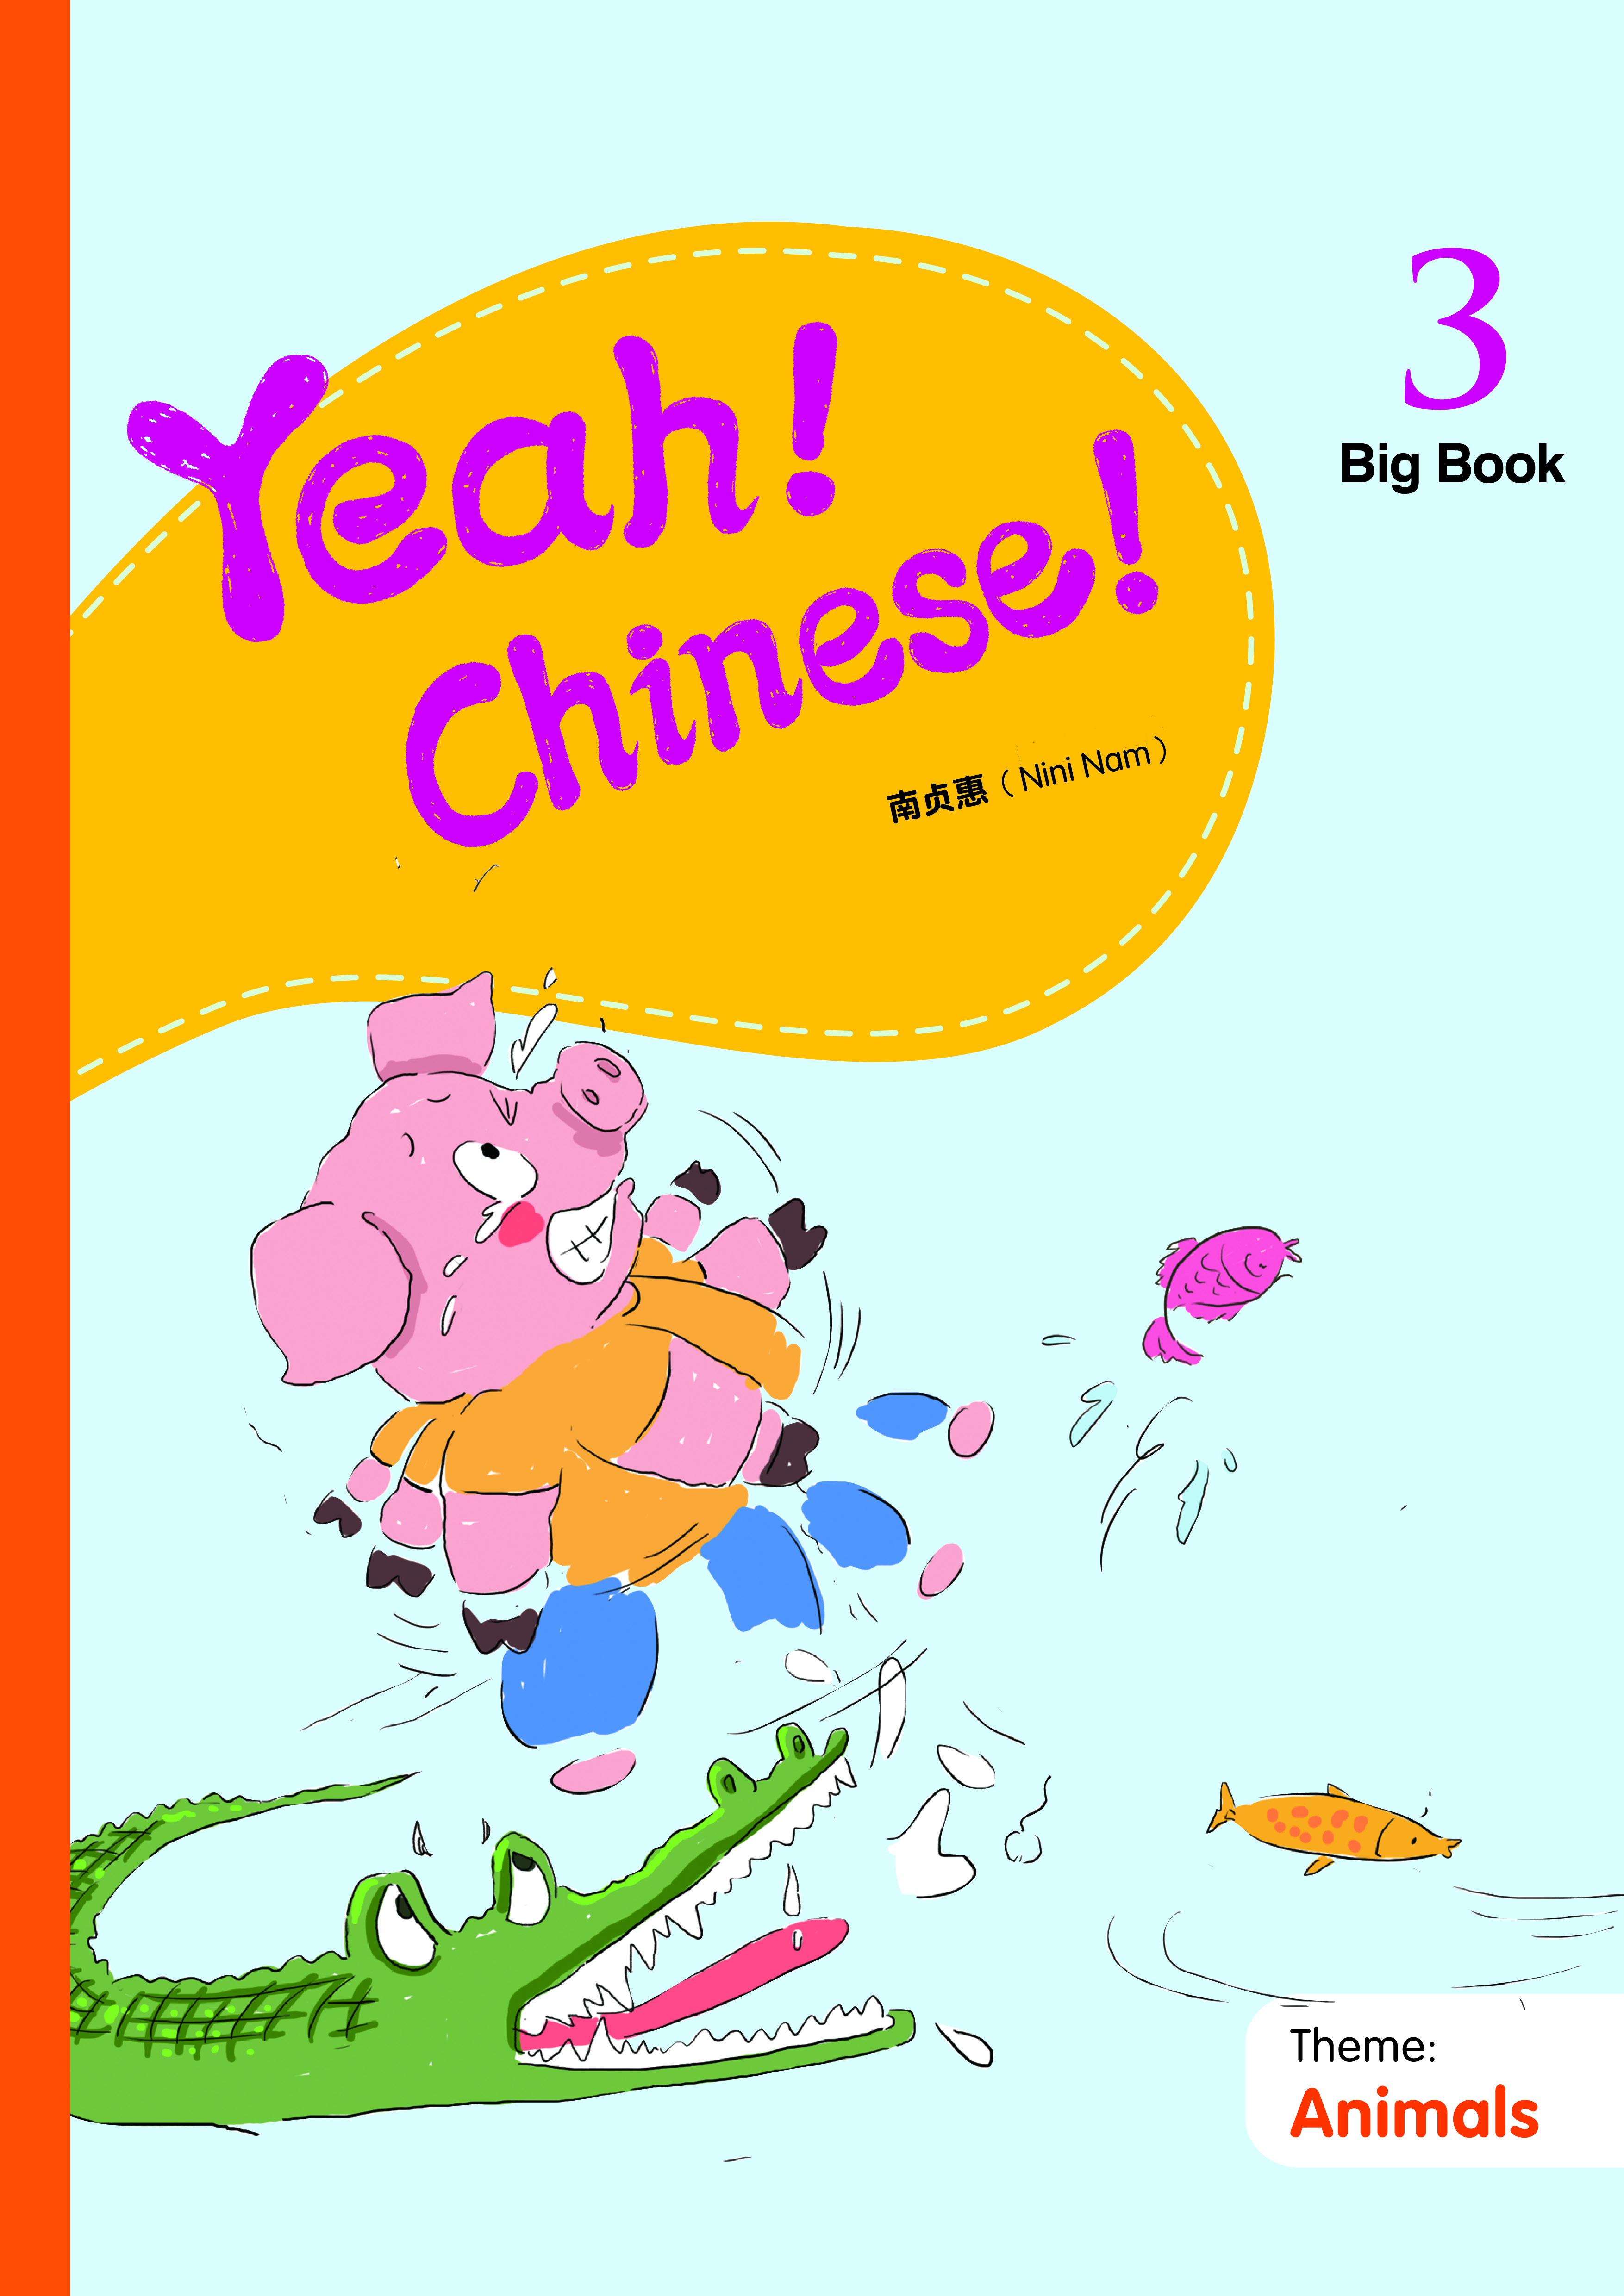 Yeah! Chinese! Big Book 3